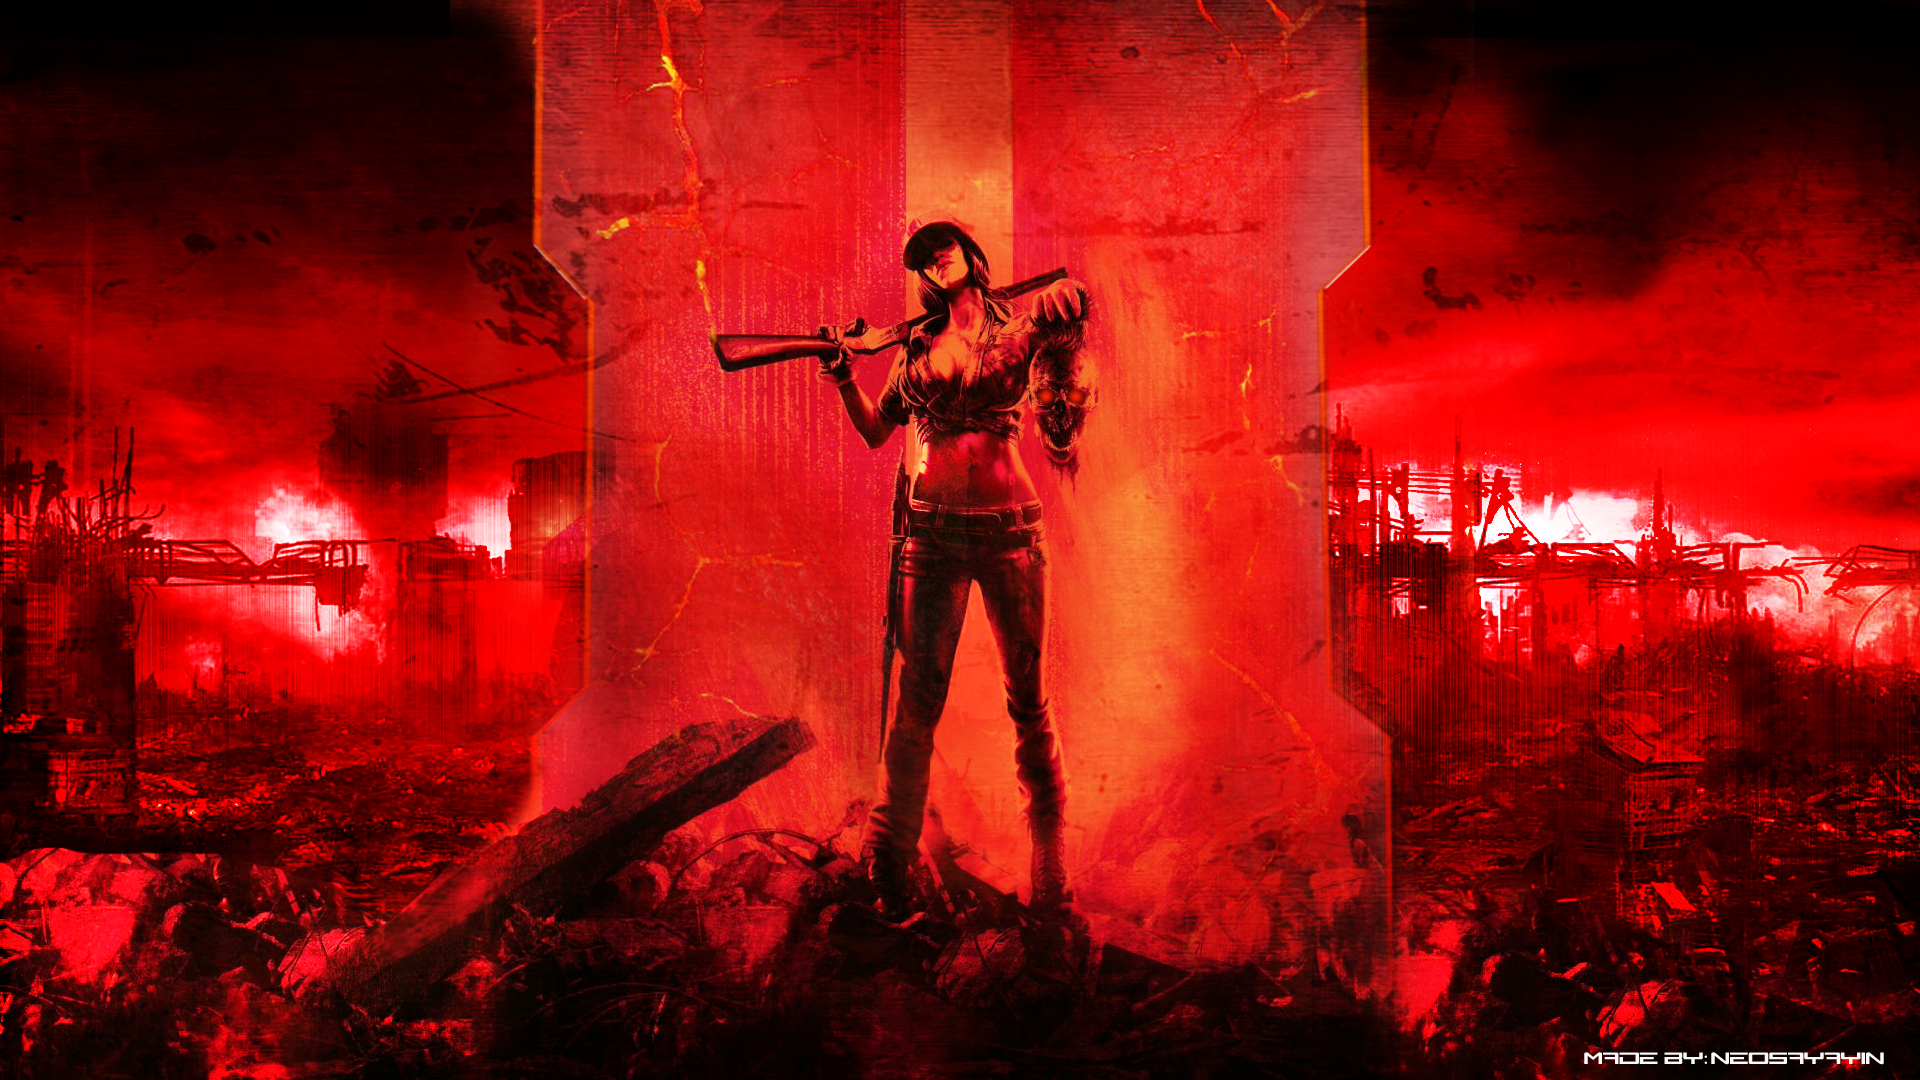 Call Of Duty Black Ops 2 Zombies Wallpaper By Neosayayin D4yi9i4